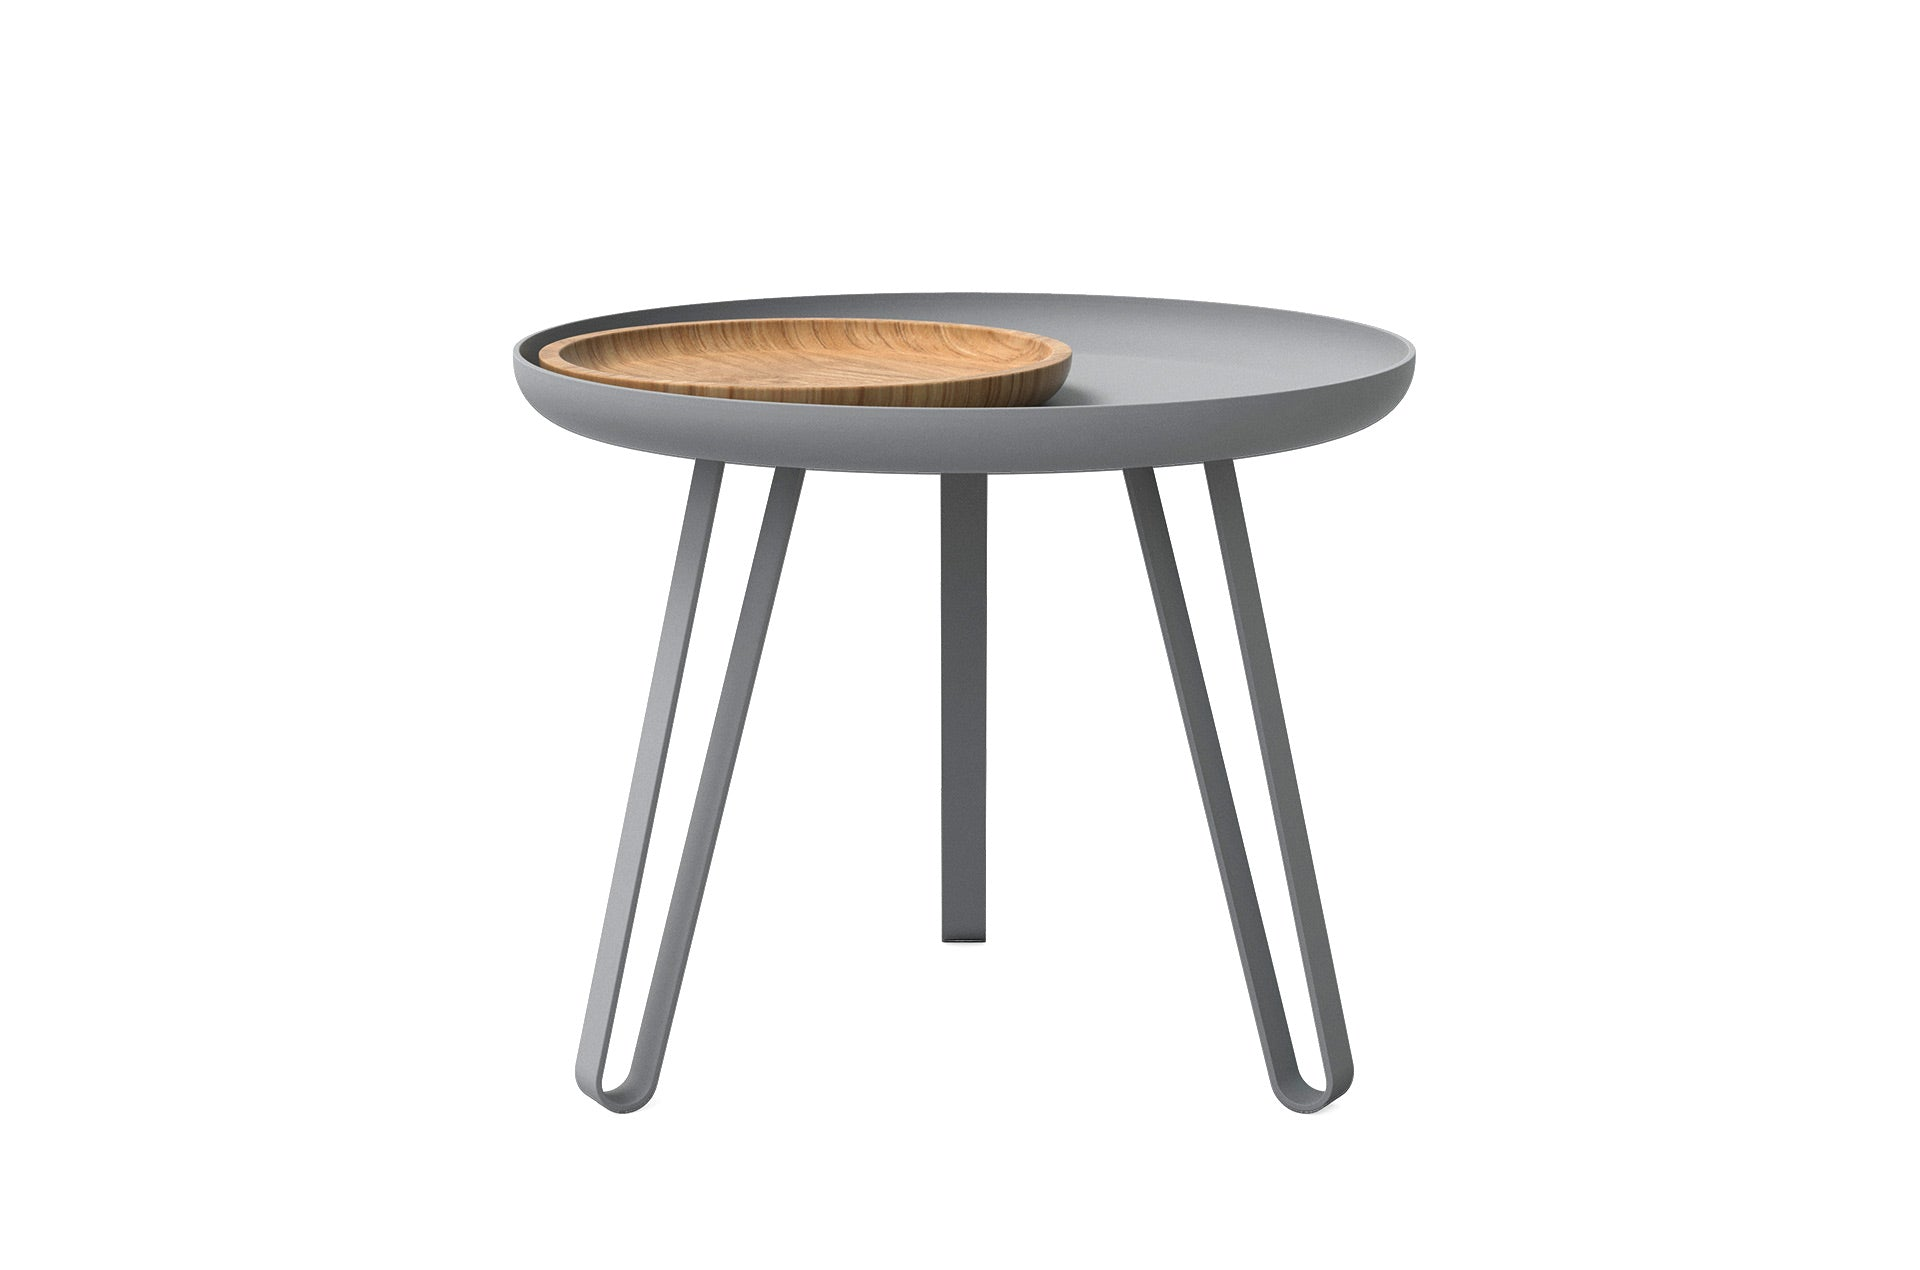 Table basse acier gris 54cm, Carosello by Slawinski-PARIDEO design durable